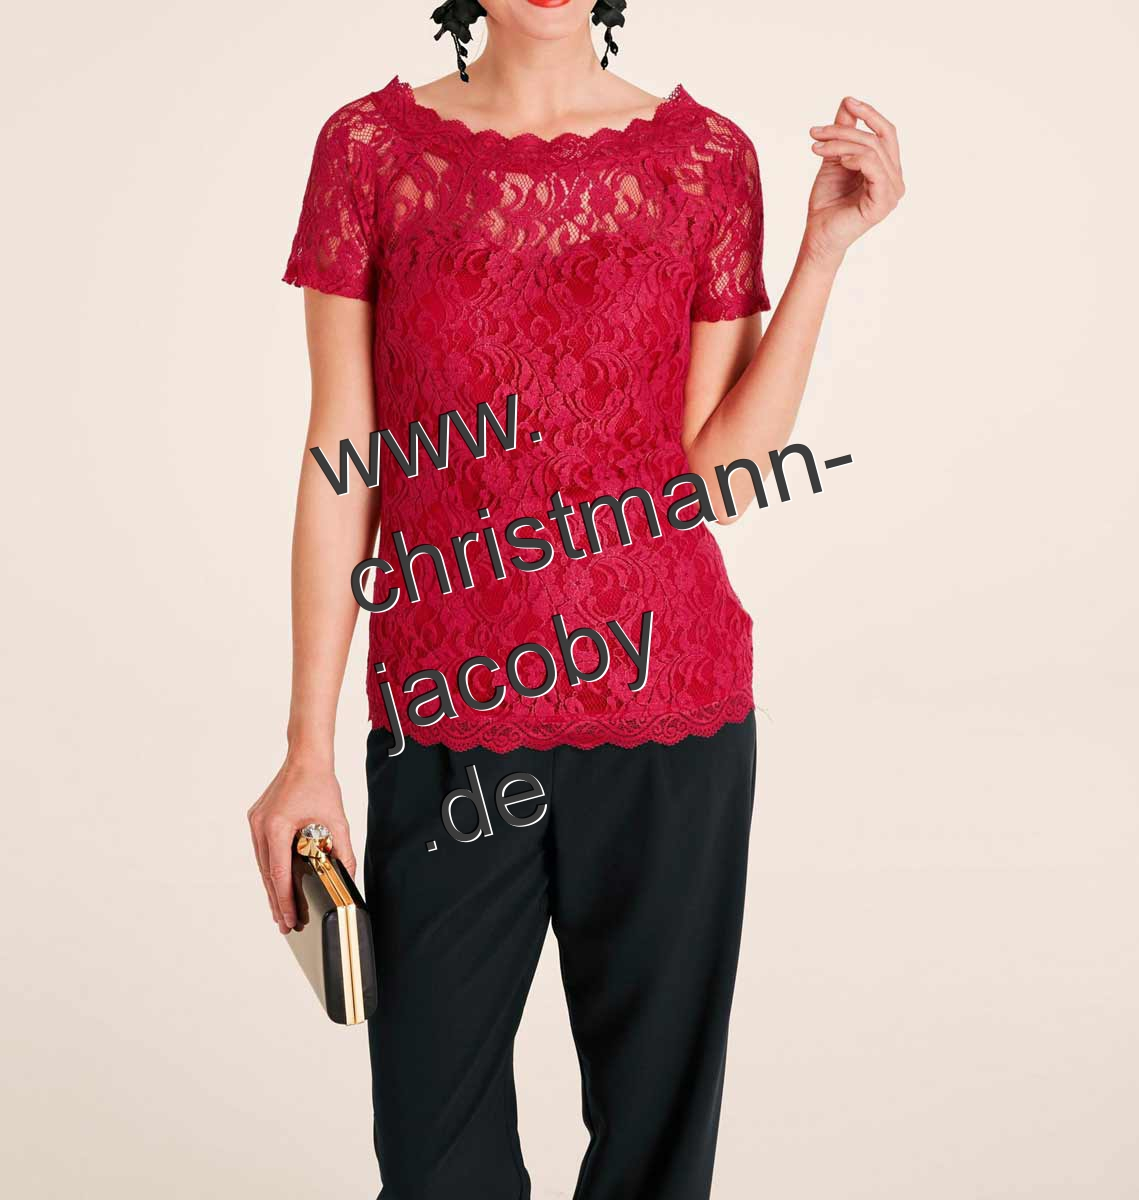 Lace shirt, red